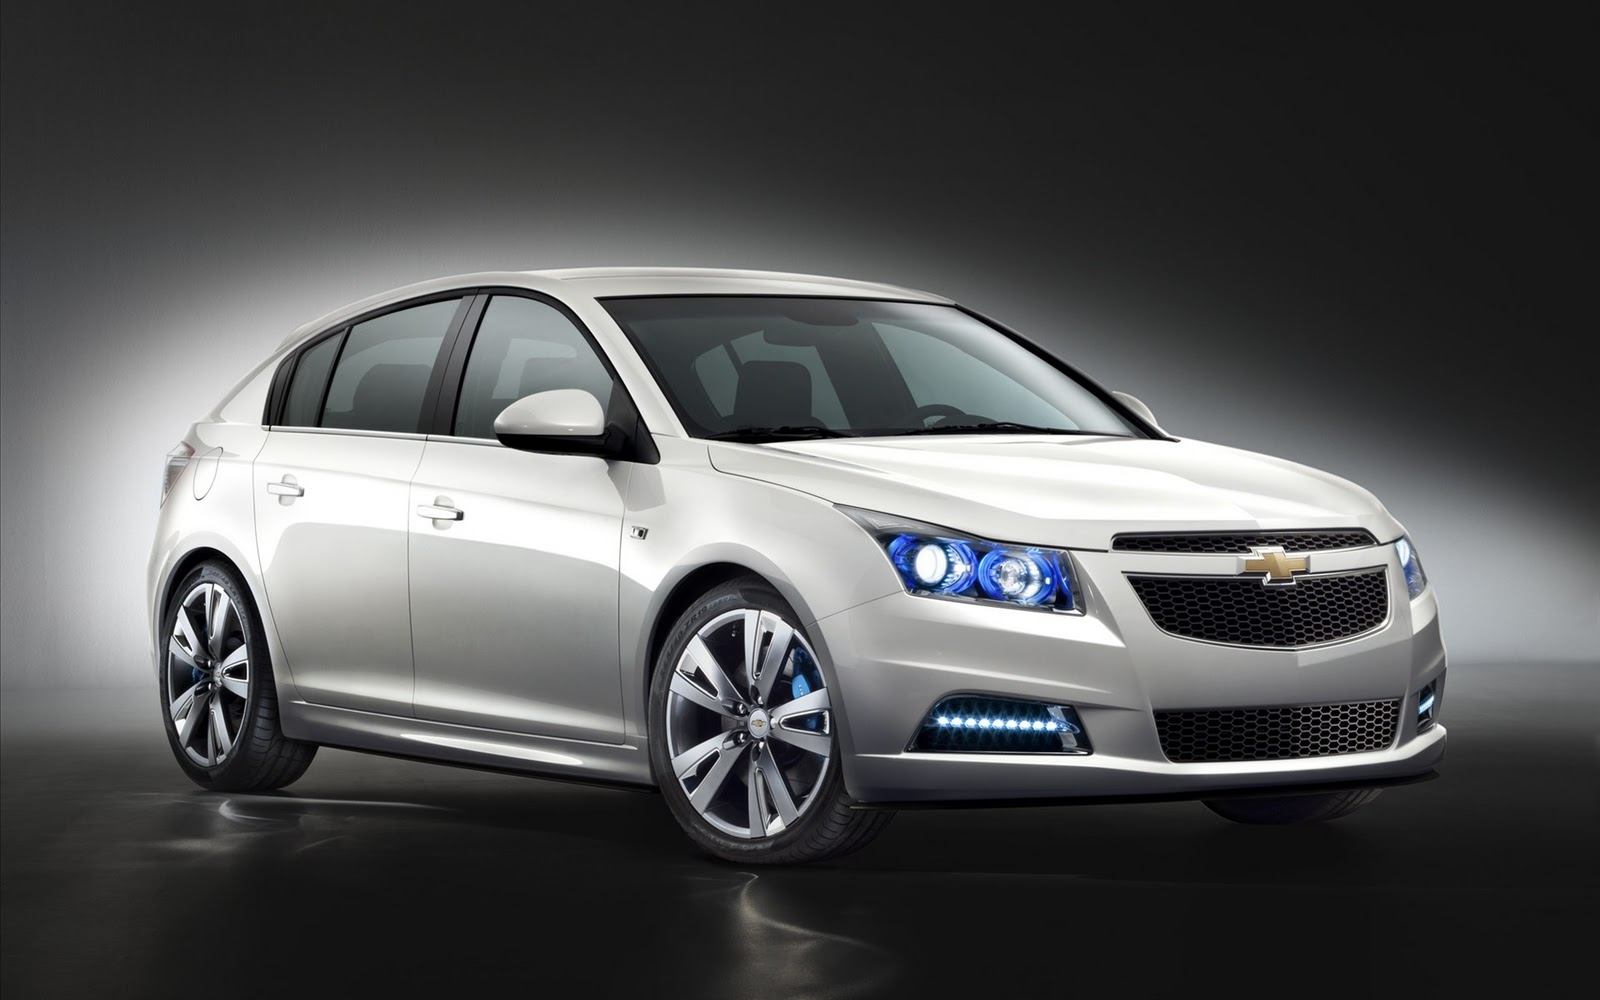 Review Chevrolet Cruze 2012 Lab Automotive